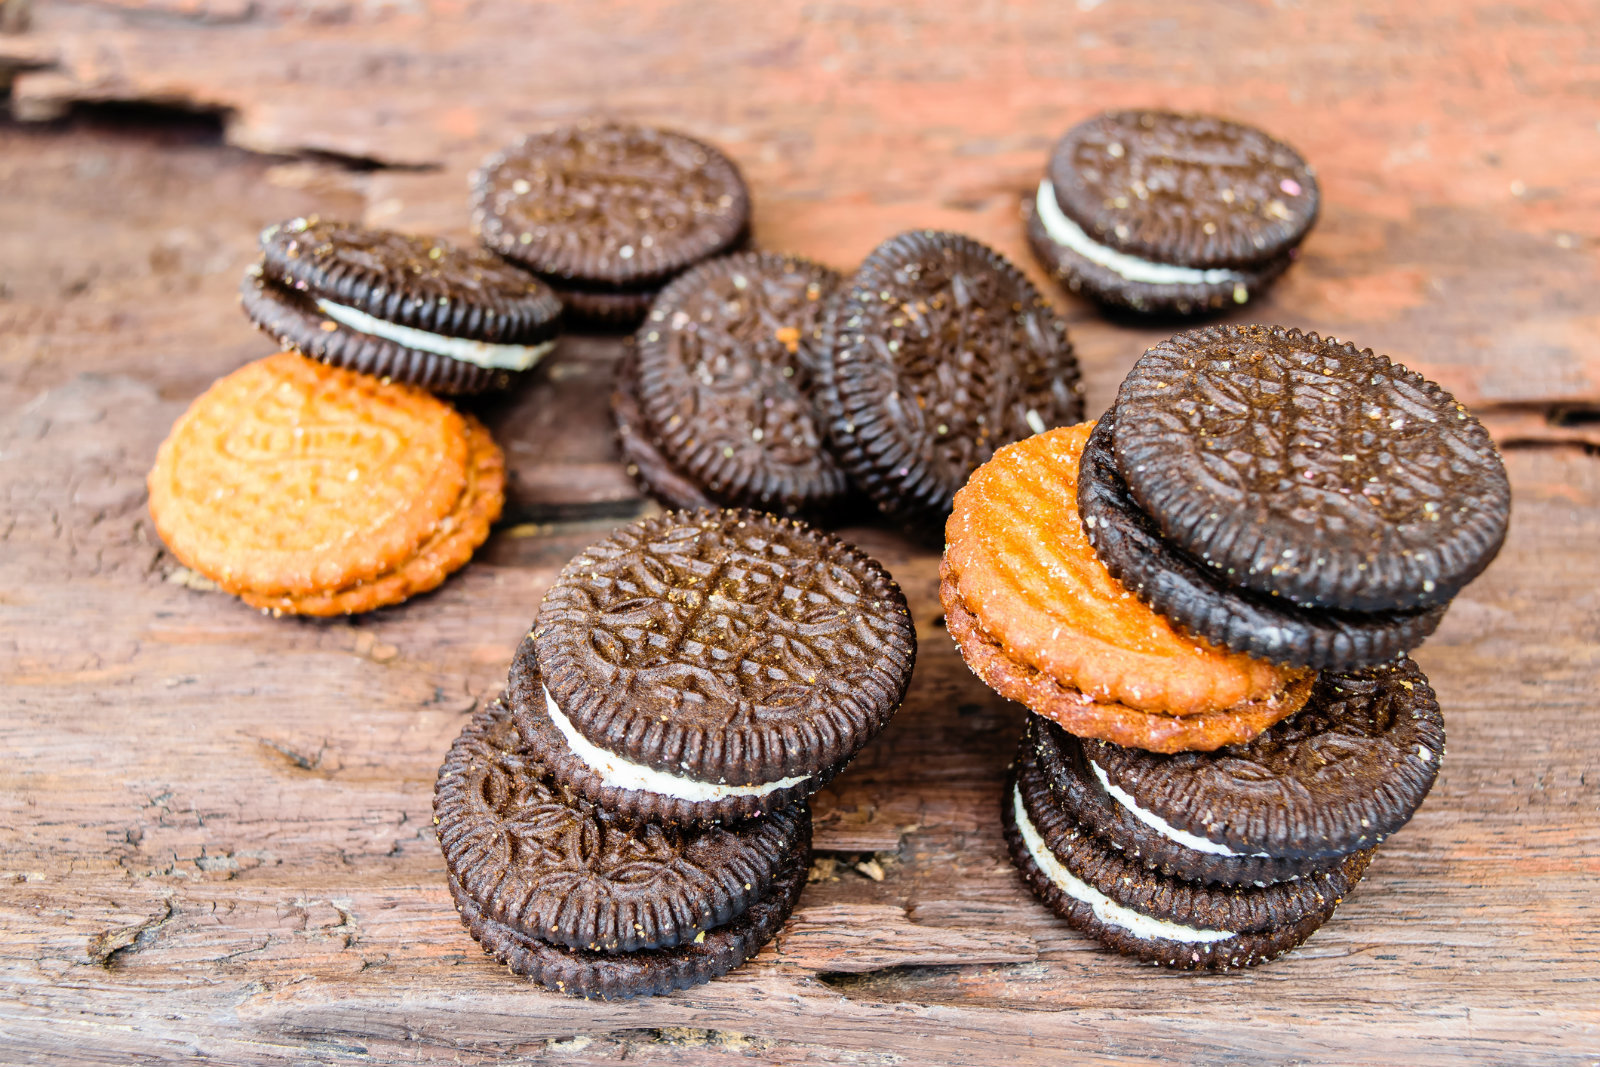 Oreo-flavored creamer is here so your coffee can be ...